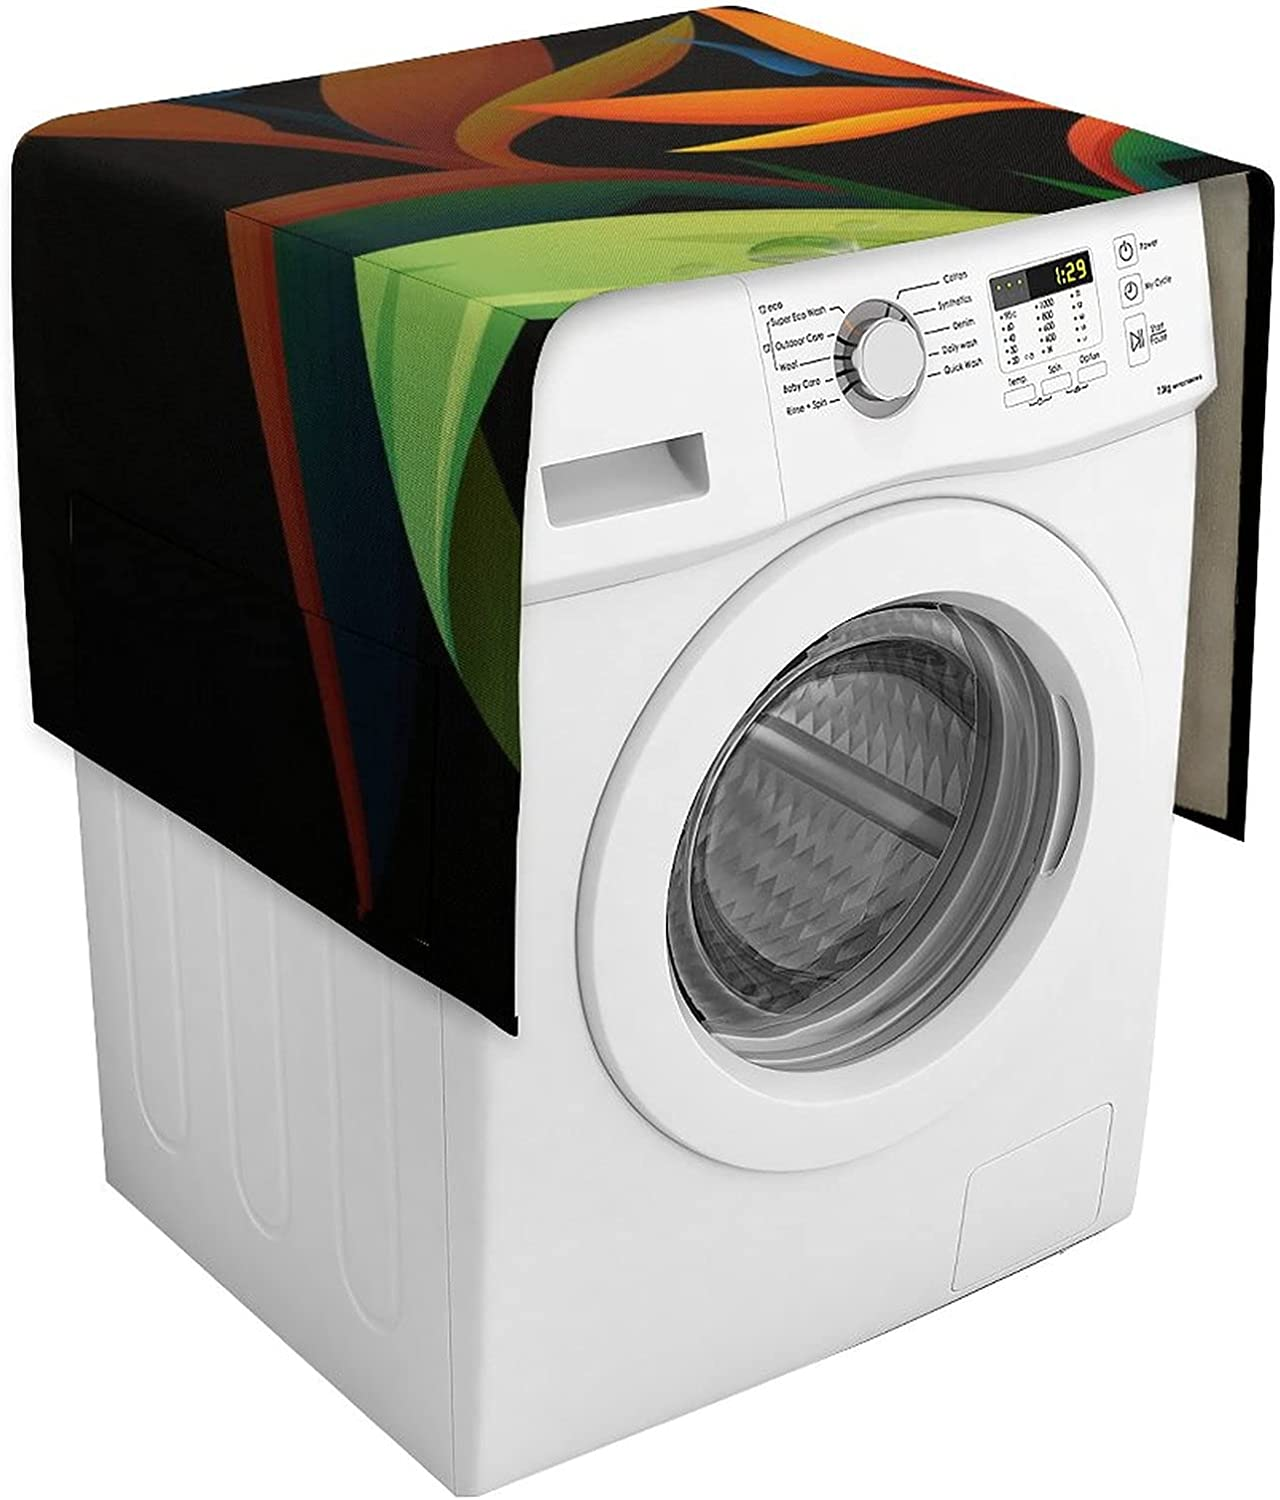 Multi-Purpose Washing Machine Genuine Free Shipping Covers Protector Washer Fresno Mall Appliance